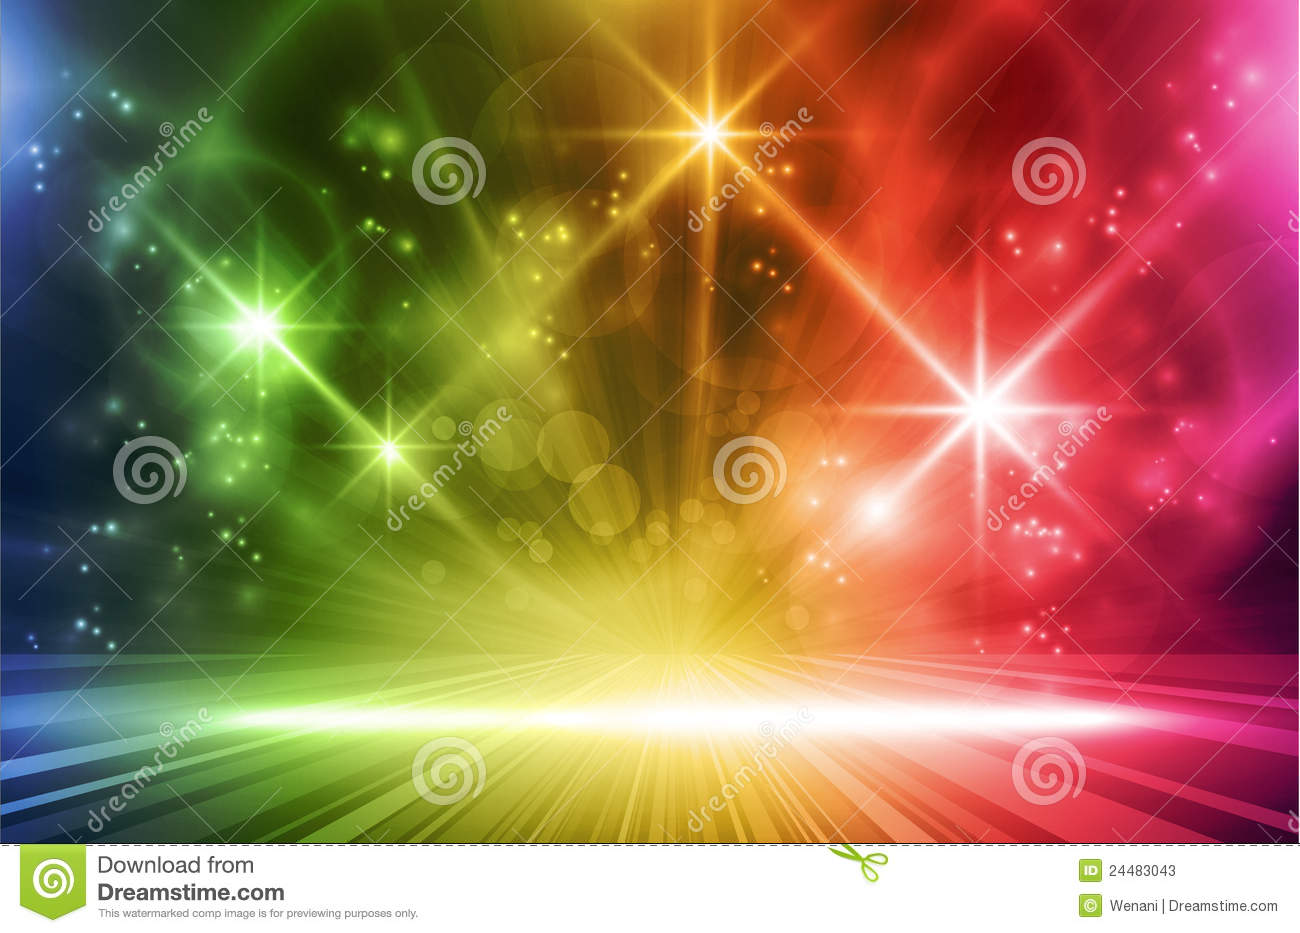 Blur 3d Wallpaper Colorful Vector Light Effects Stock Vector Illustration